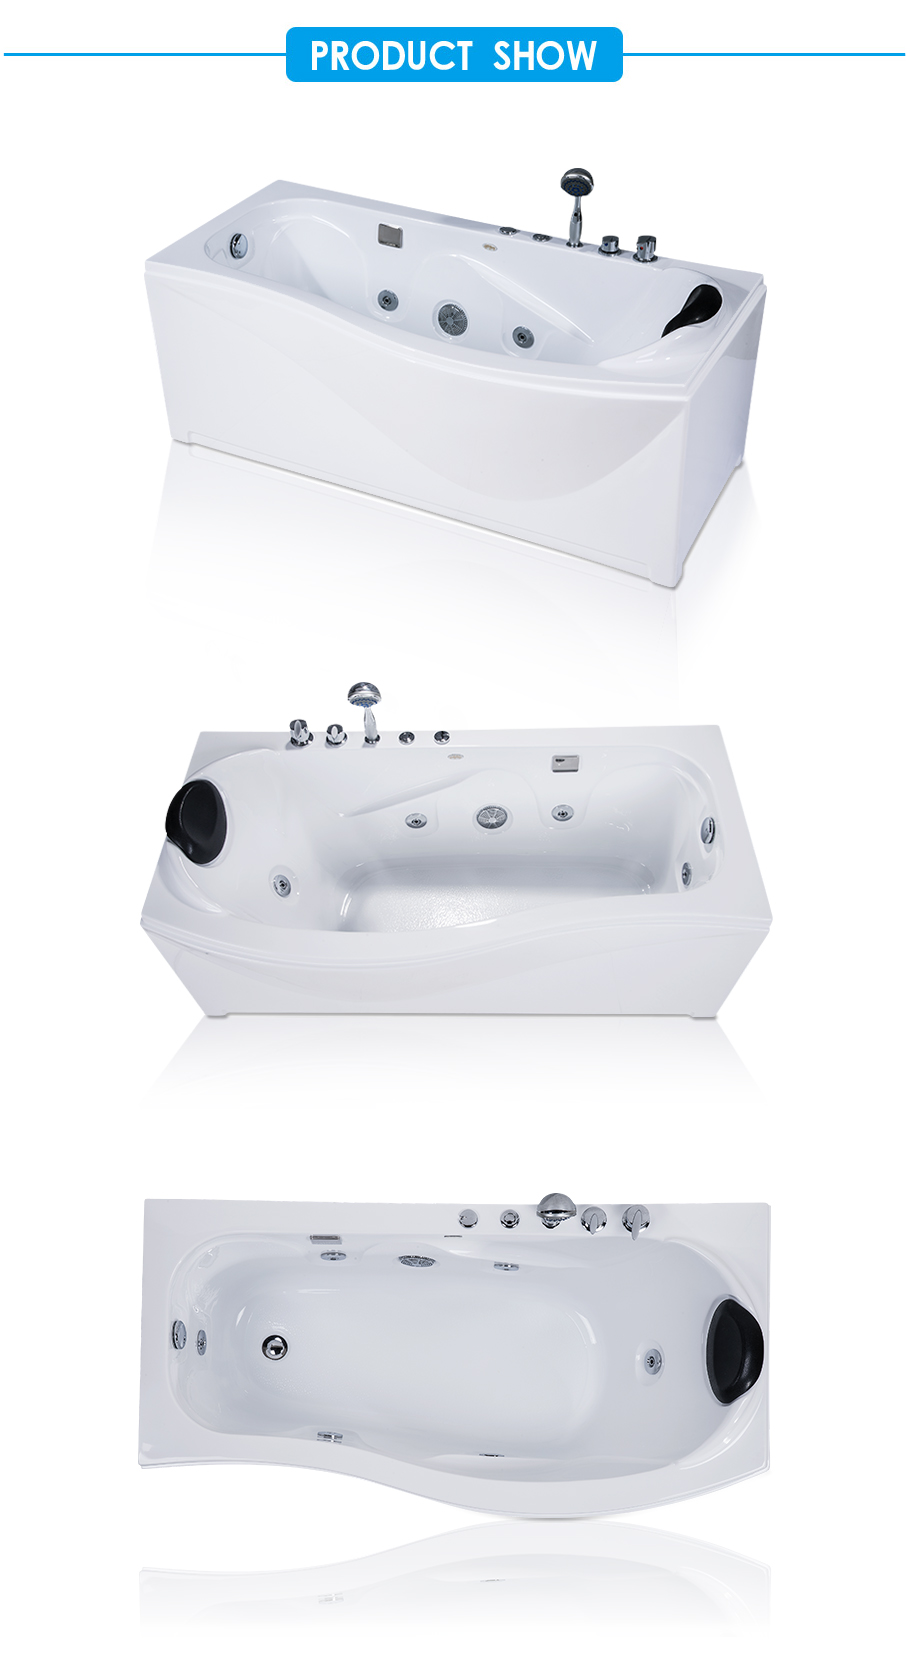 New Town White Acrylic Tub with Whirlpool